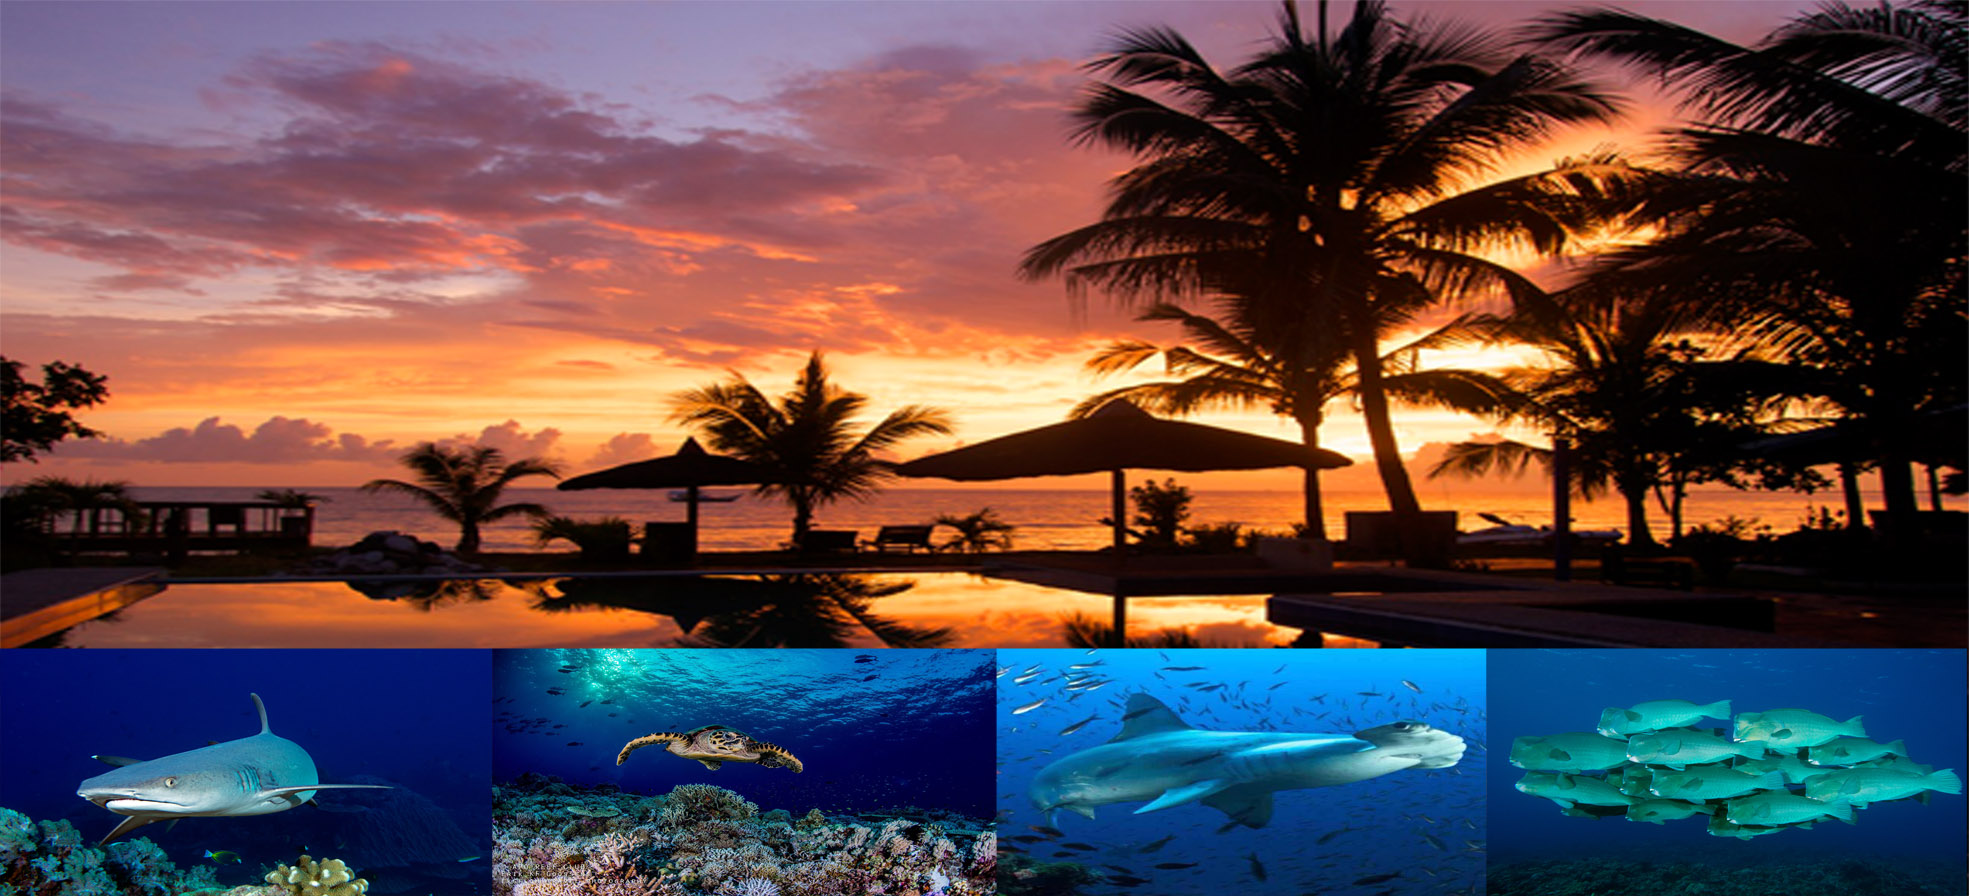 Dive Center For Sale - beach and dive resort in the philippines for sale